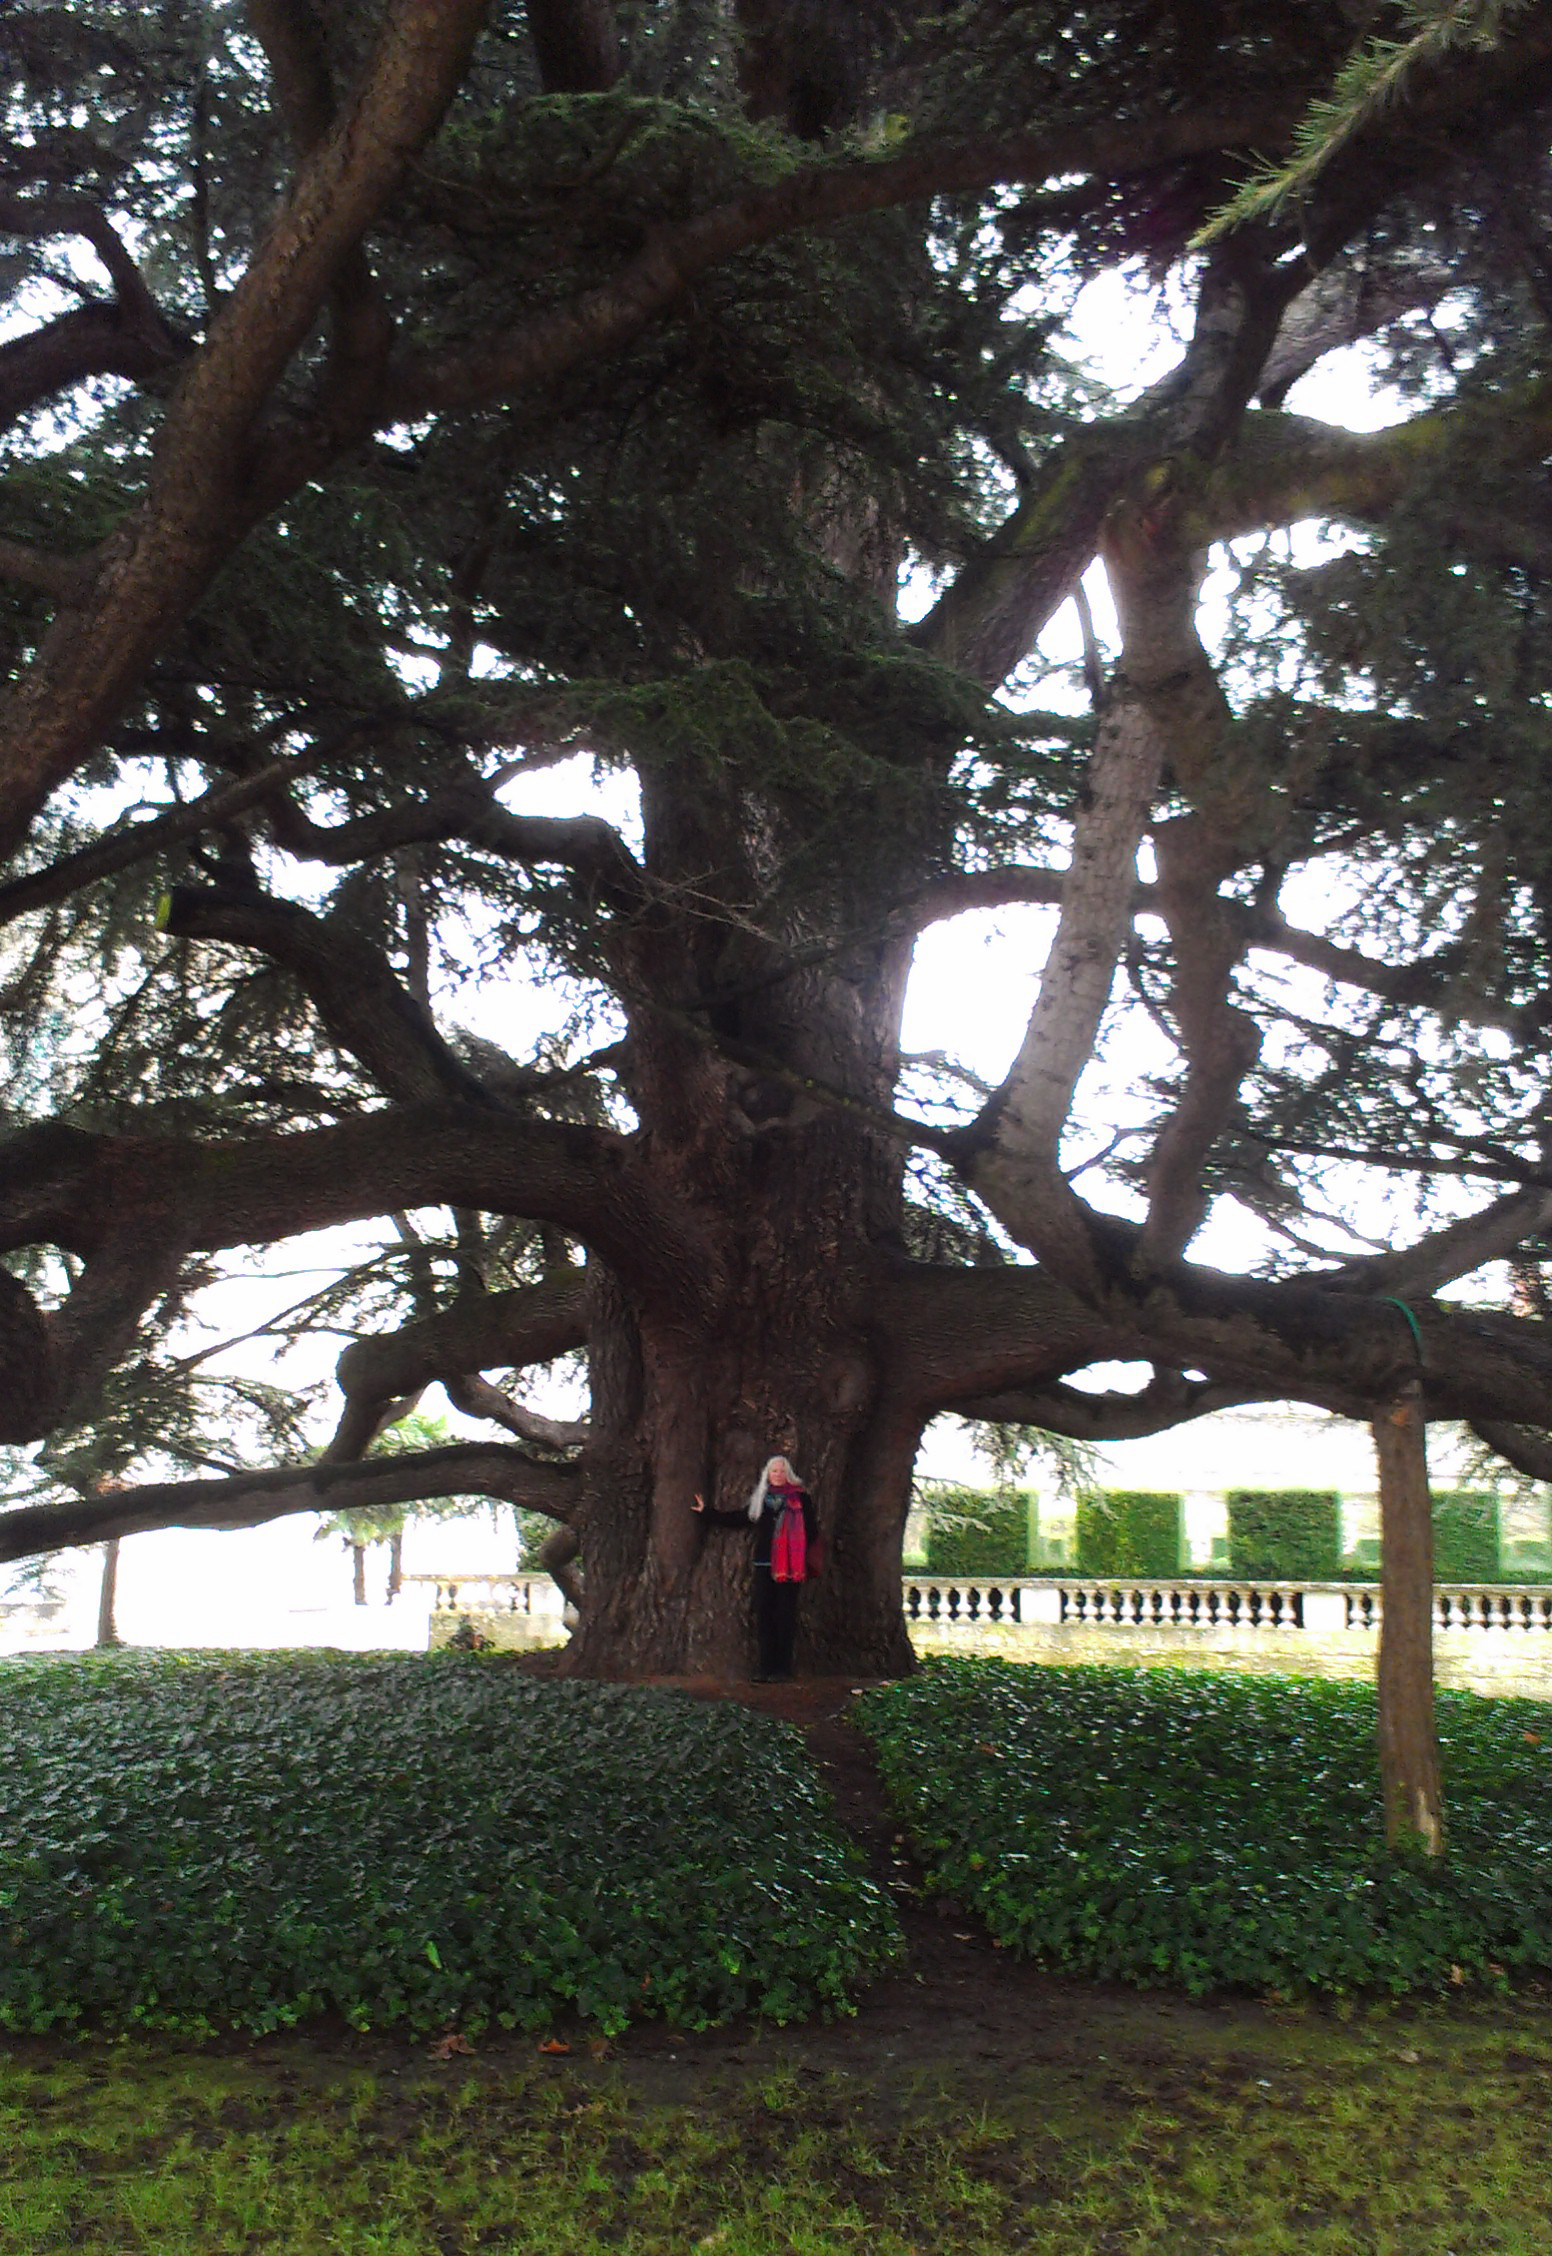 Communing with an enormous Lebanon Cedar next to the Cathedral in Tours, France.